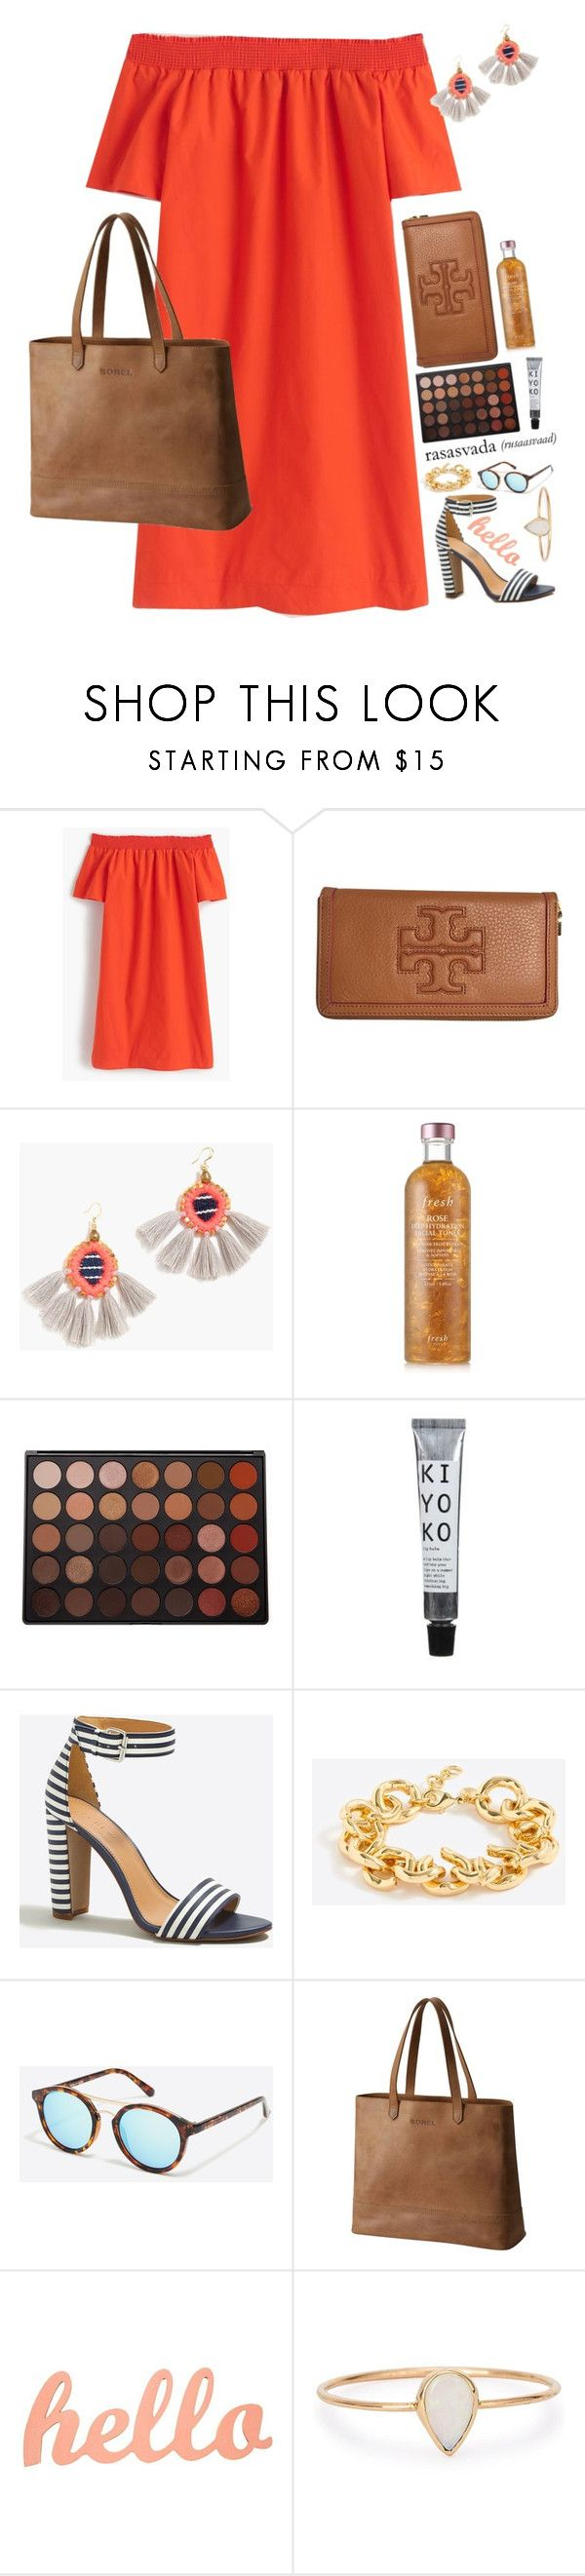 """""""<>"""" by livperu ❤ liked on Polyvore featuring J.Crew, Tory Burch, Fresh, Morphe, SOREL and Catbird"""